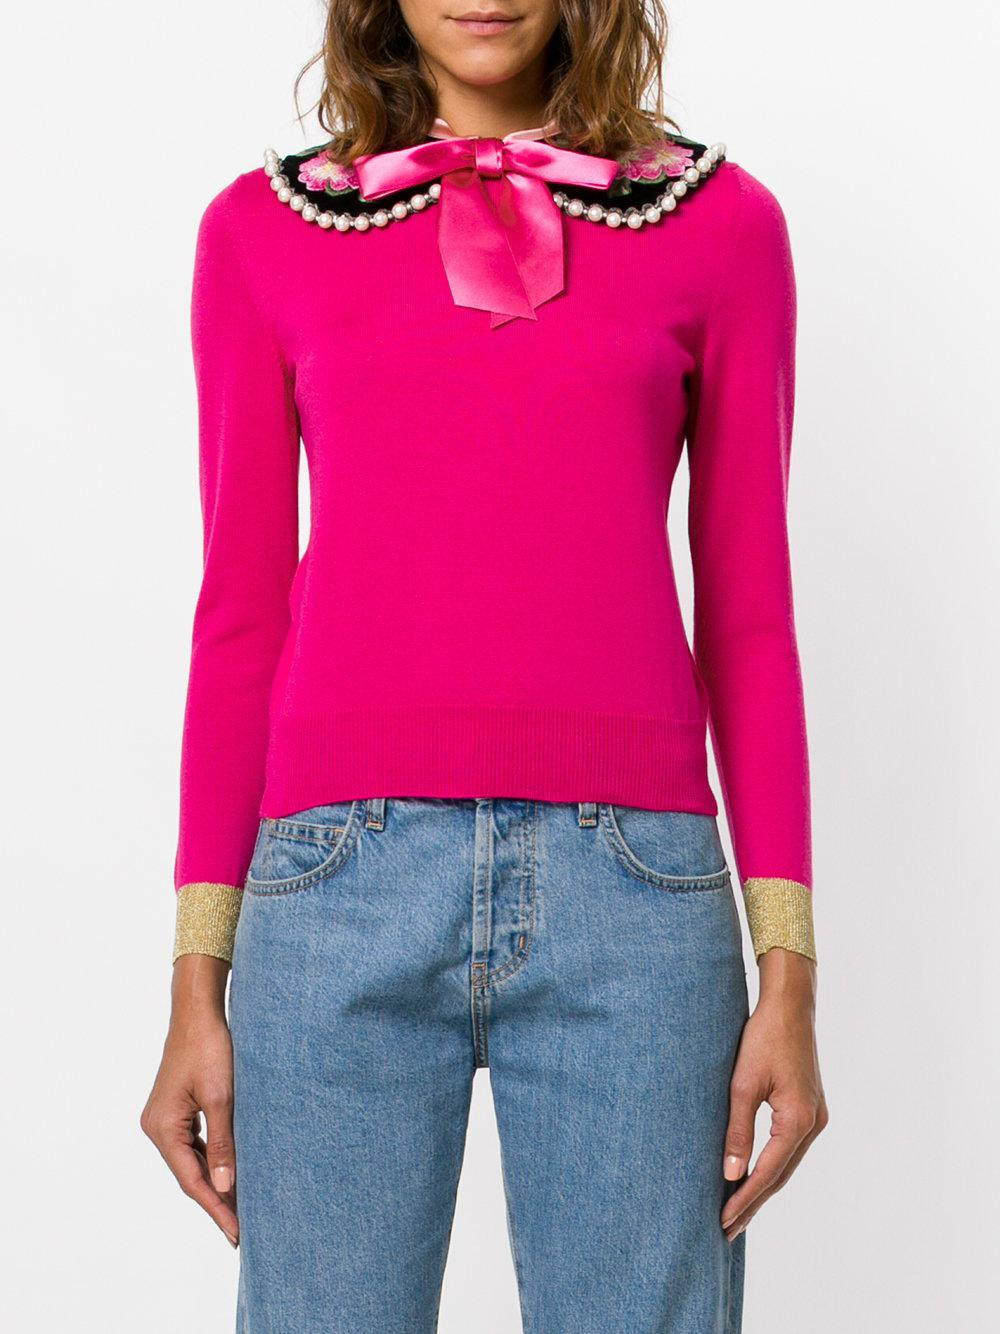 Gucci Peter Pan Collar Cashmere Sweater in Pink | Lyst